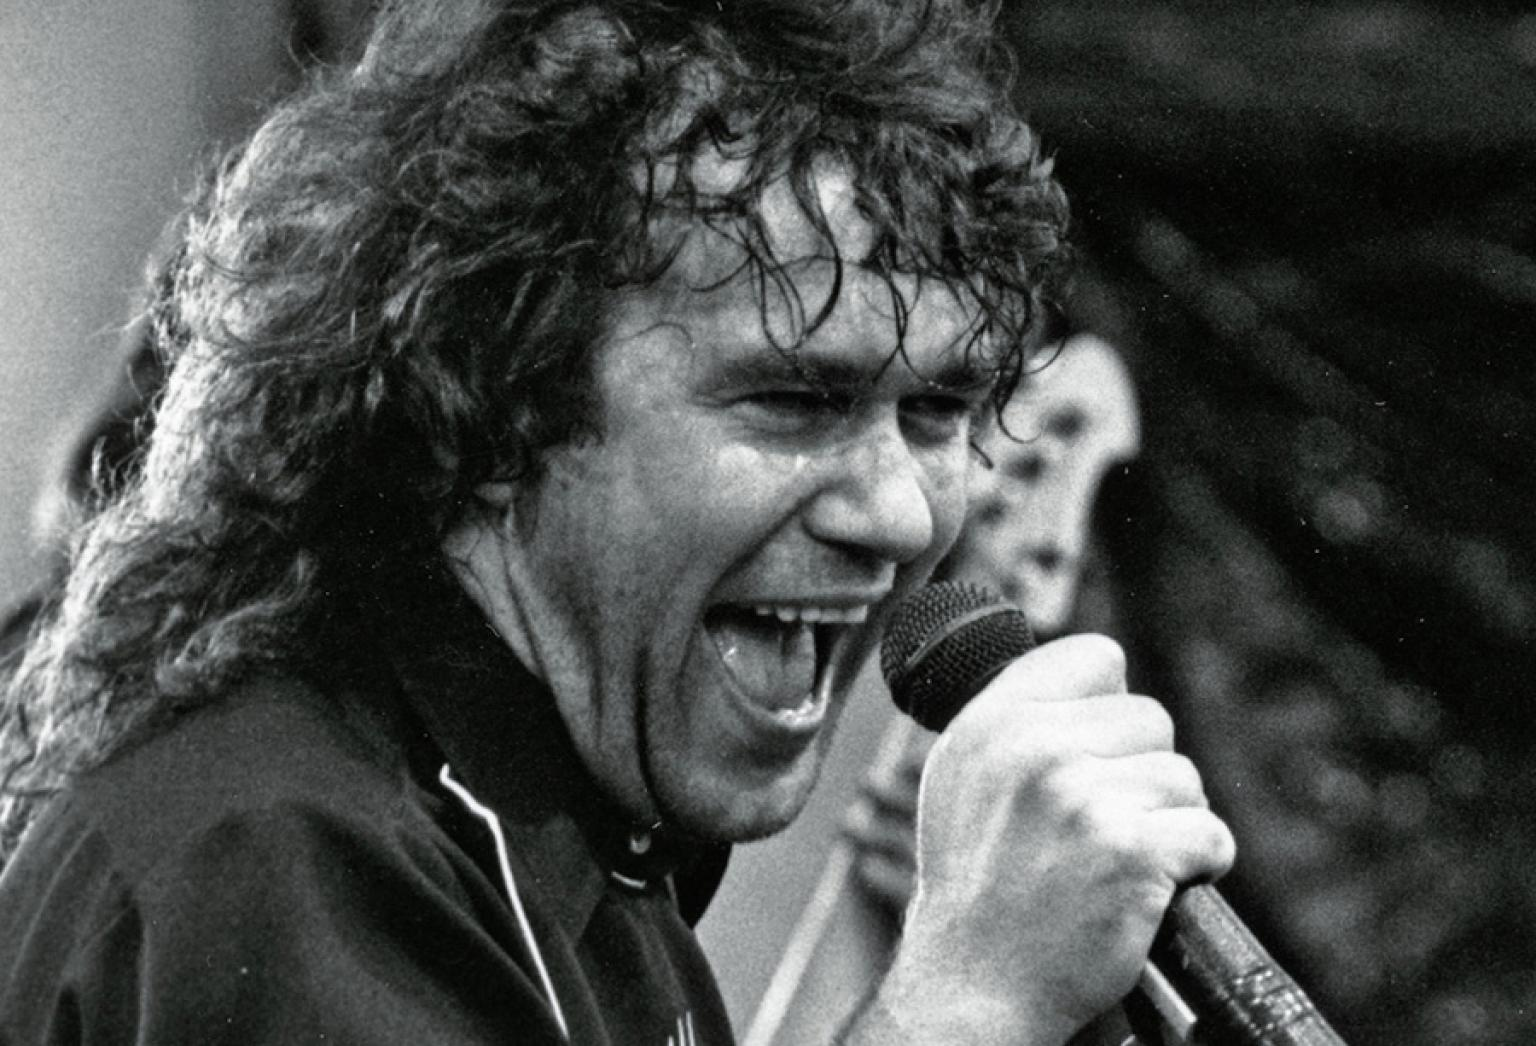 Close up of Jimmy Barnes singing into a microphone on stage.